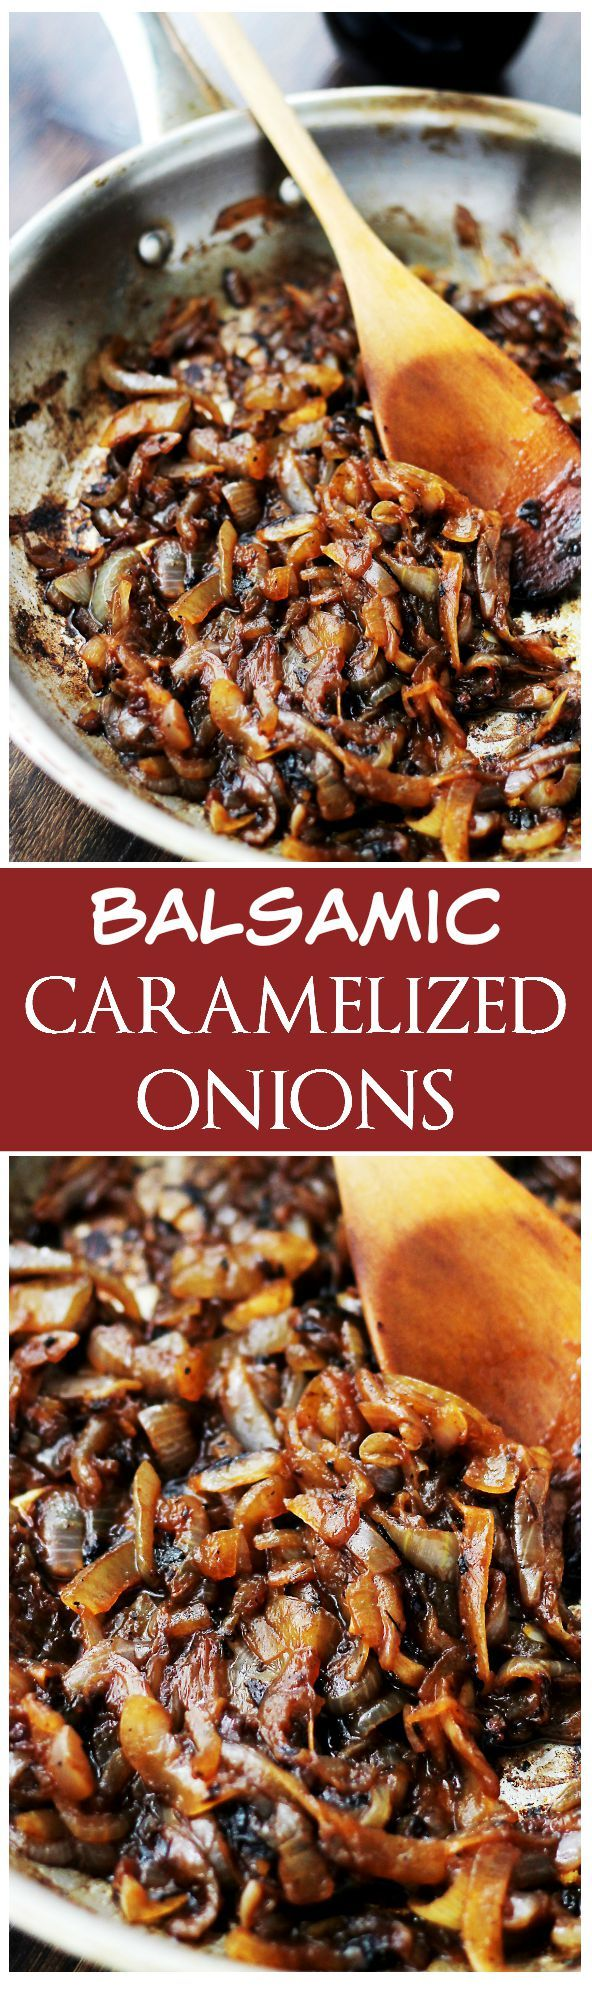 ginger and caramelized onions perfect caramelized onions recipes ...